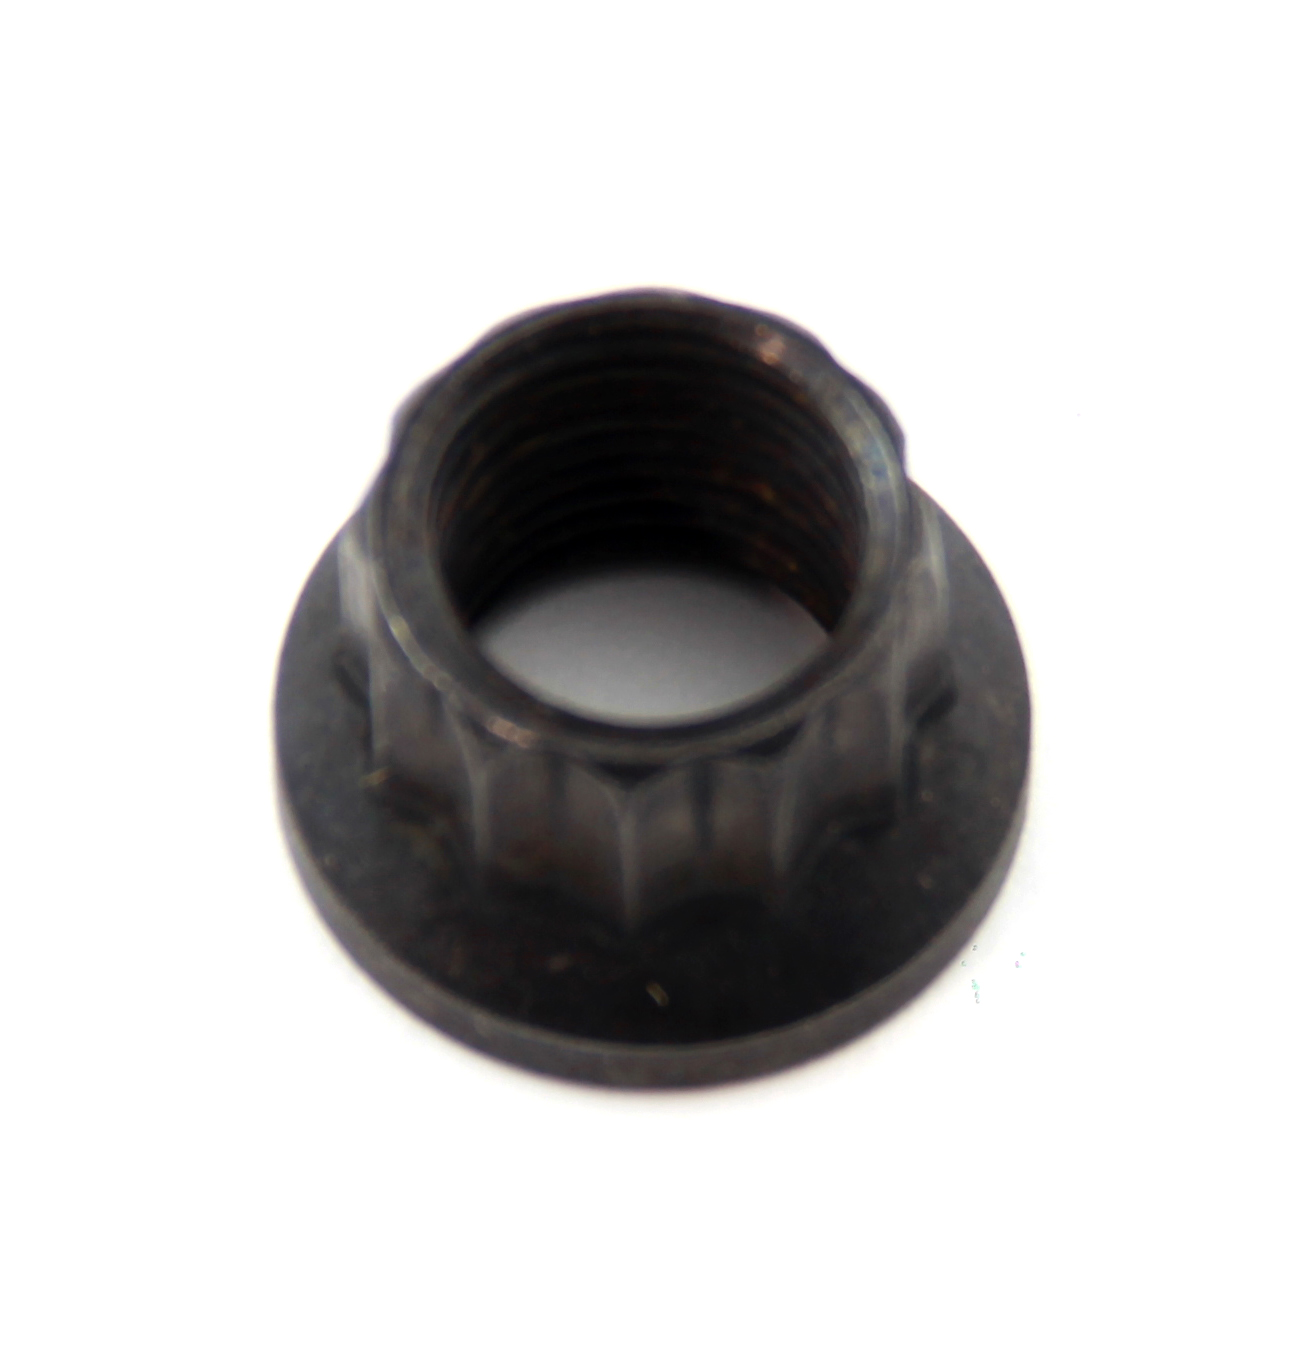 "3/8"" x 16 Unc Black Oxide 12 Point Hex Nut"